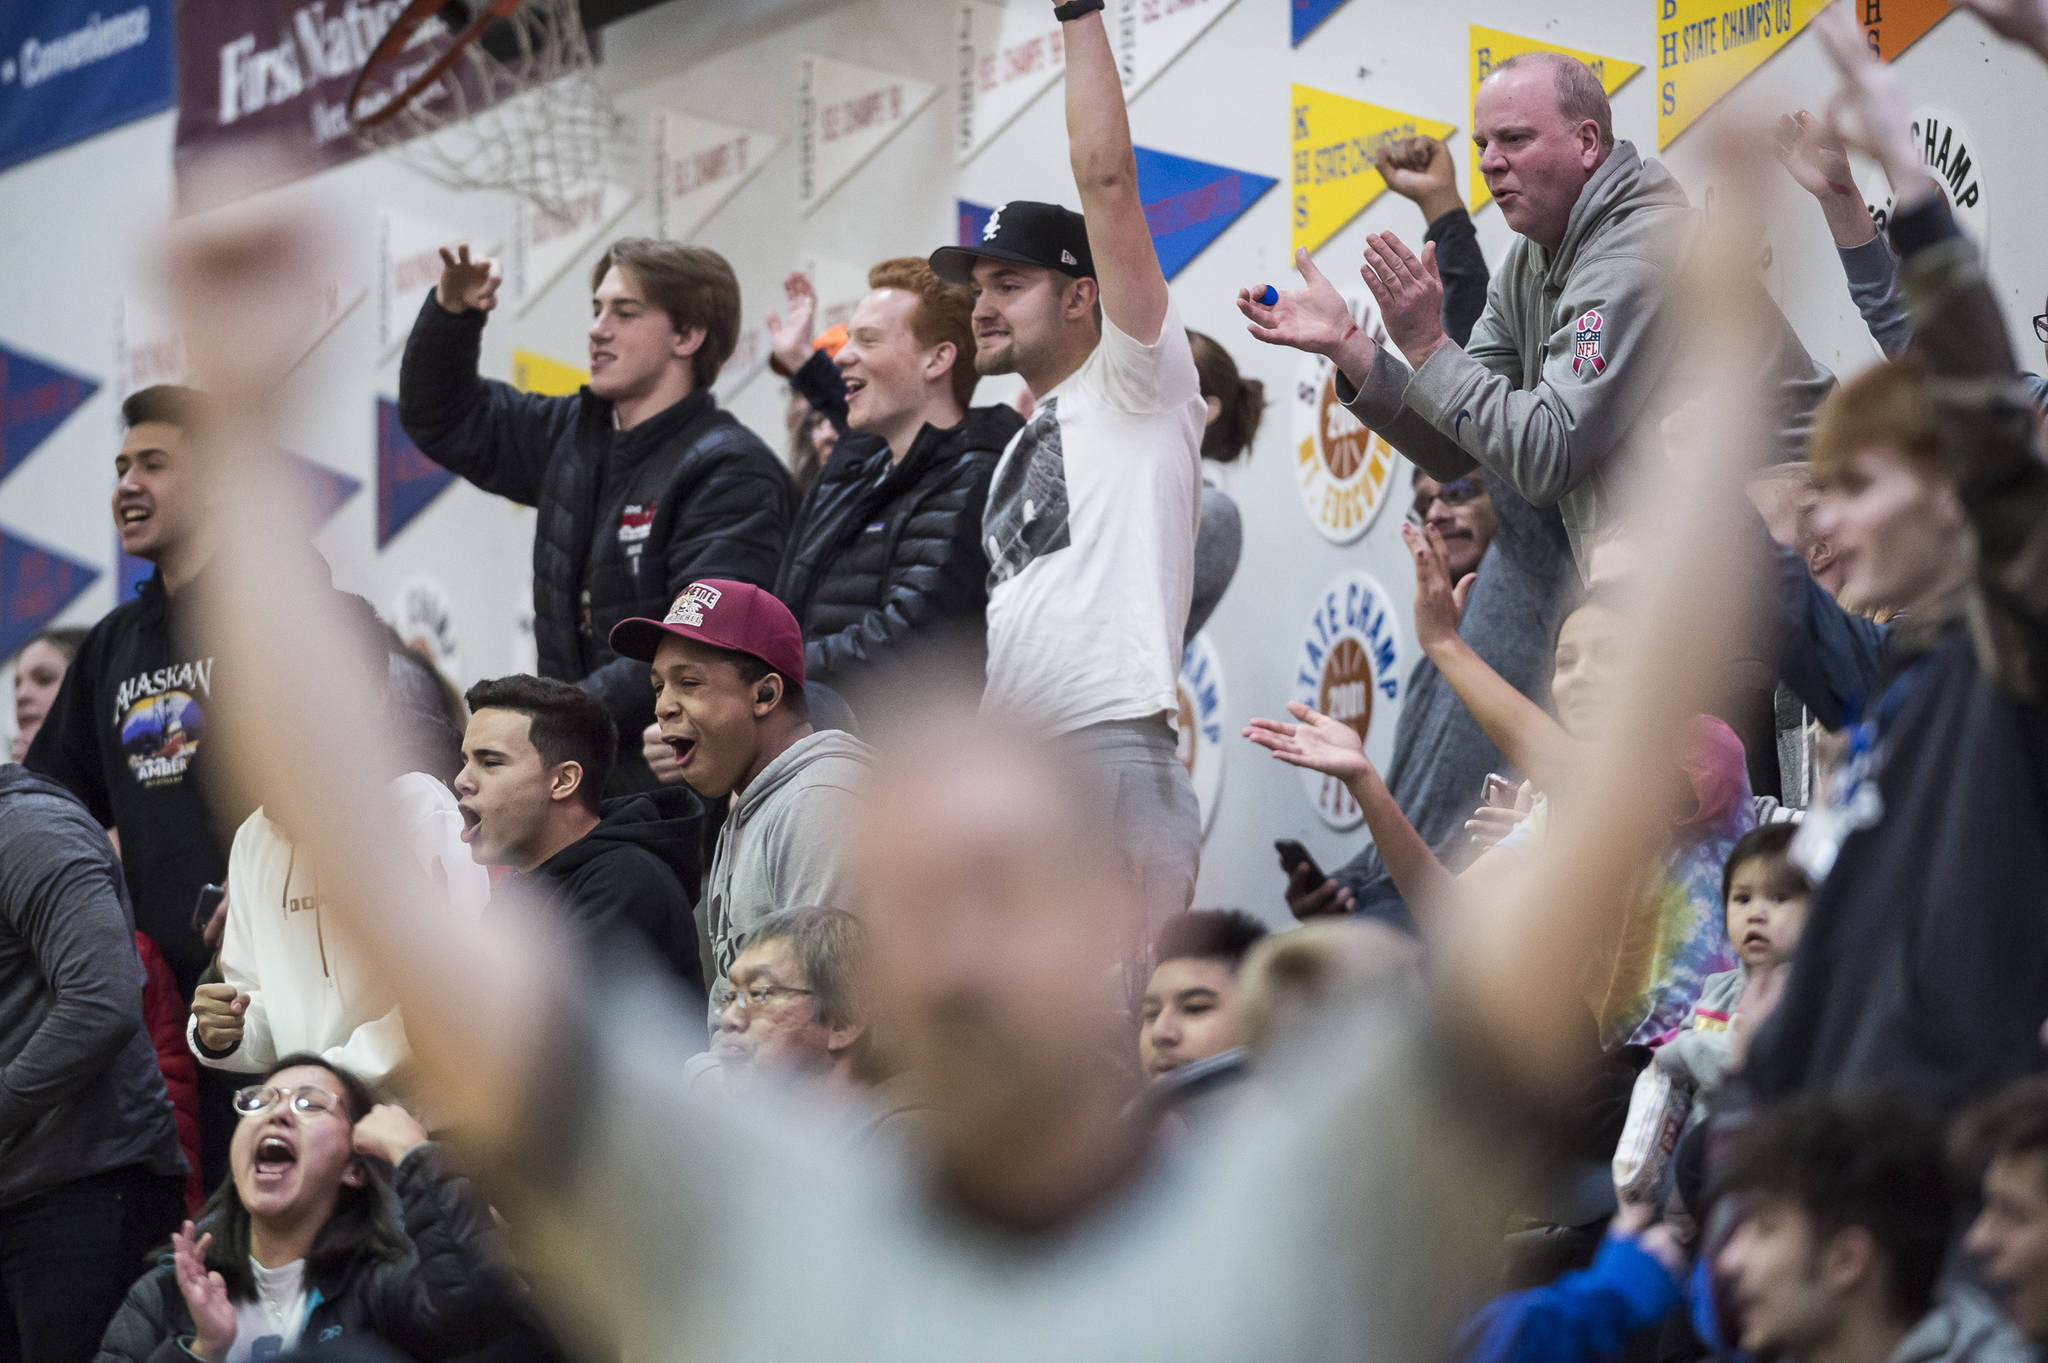 Former Juneau-Douglas' players and fans celebrate a three-point shot against Lathrop at the Princess Cruises Capital City Classic at Juneau-Douglas High School on Thursday, Dec. 27, 2018. Juneau-Douglas won 69-45. (Michael Penn | Juneau Empire)